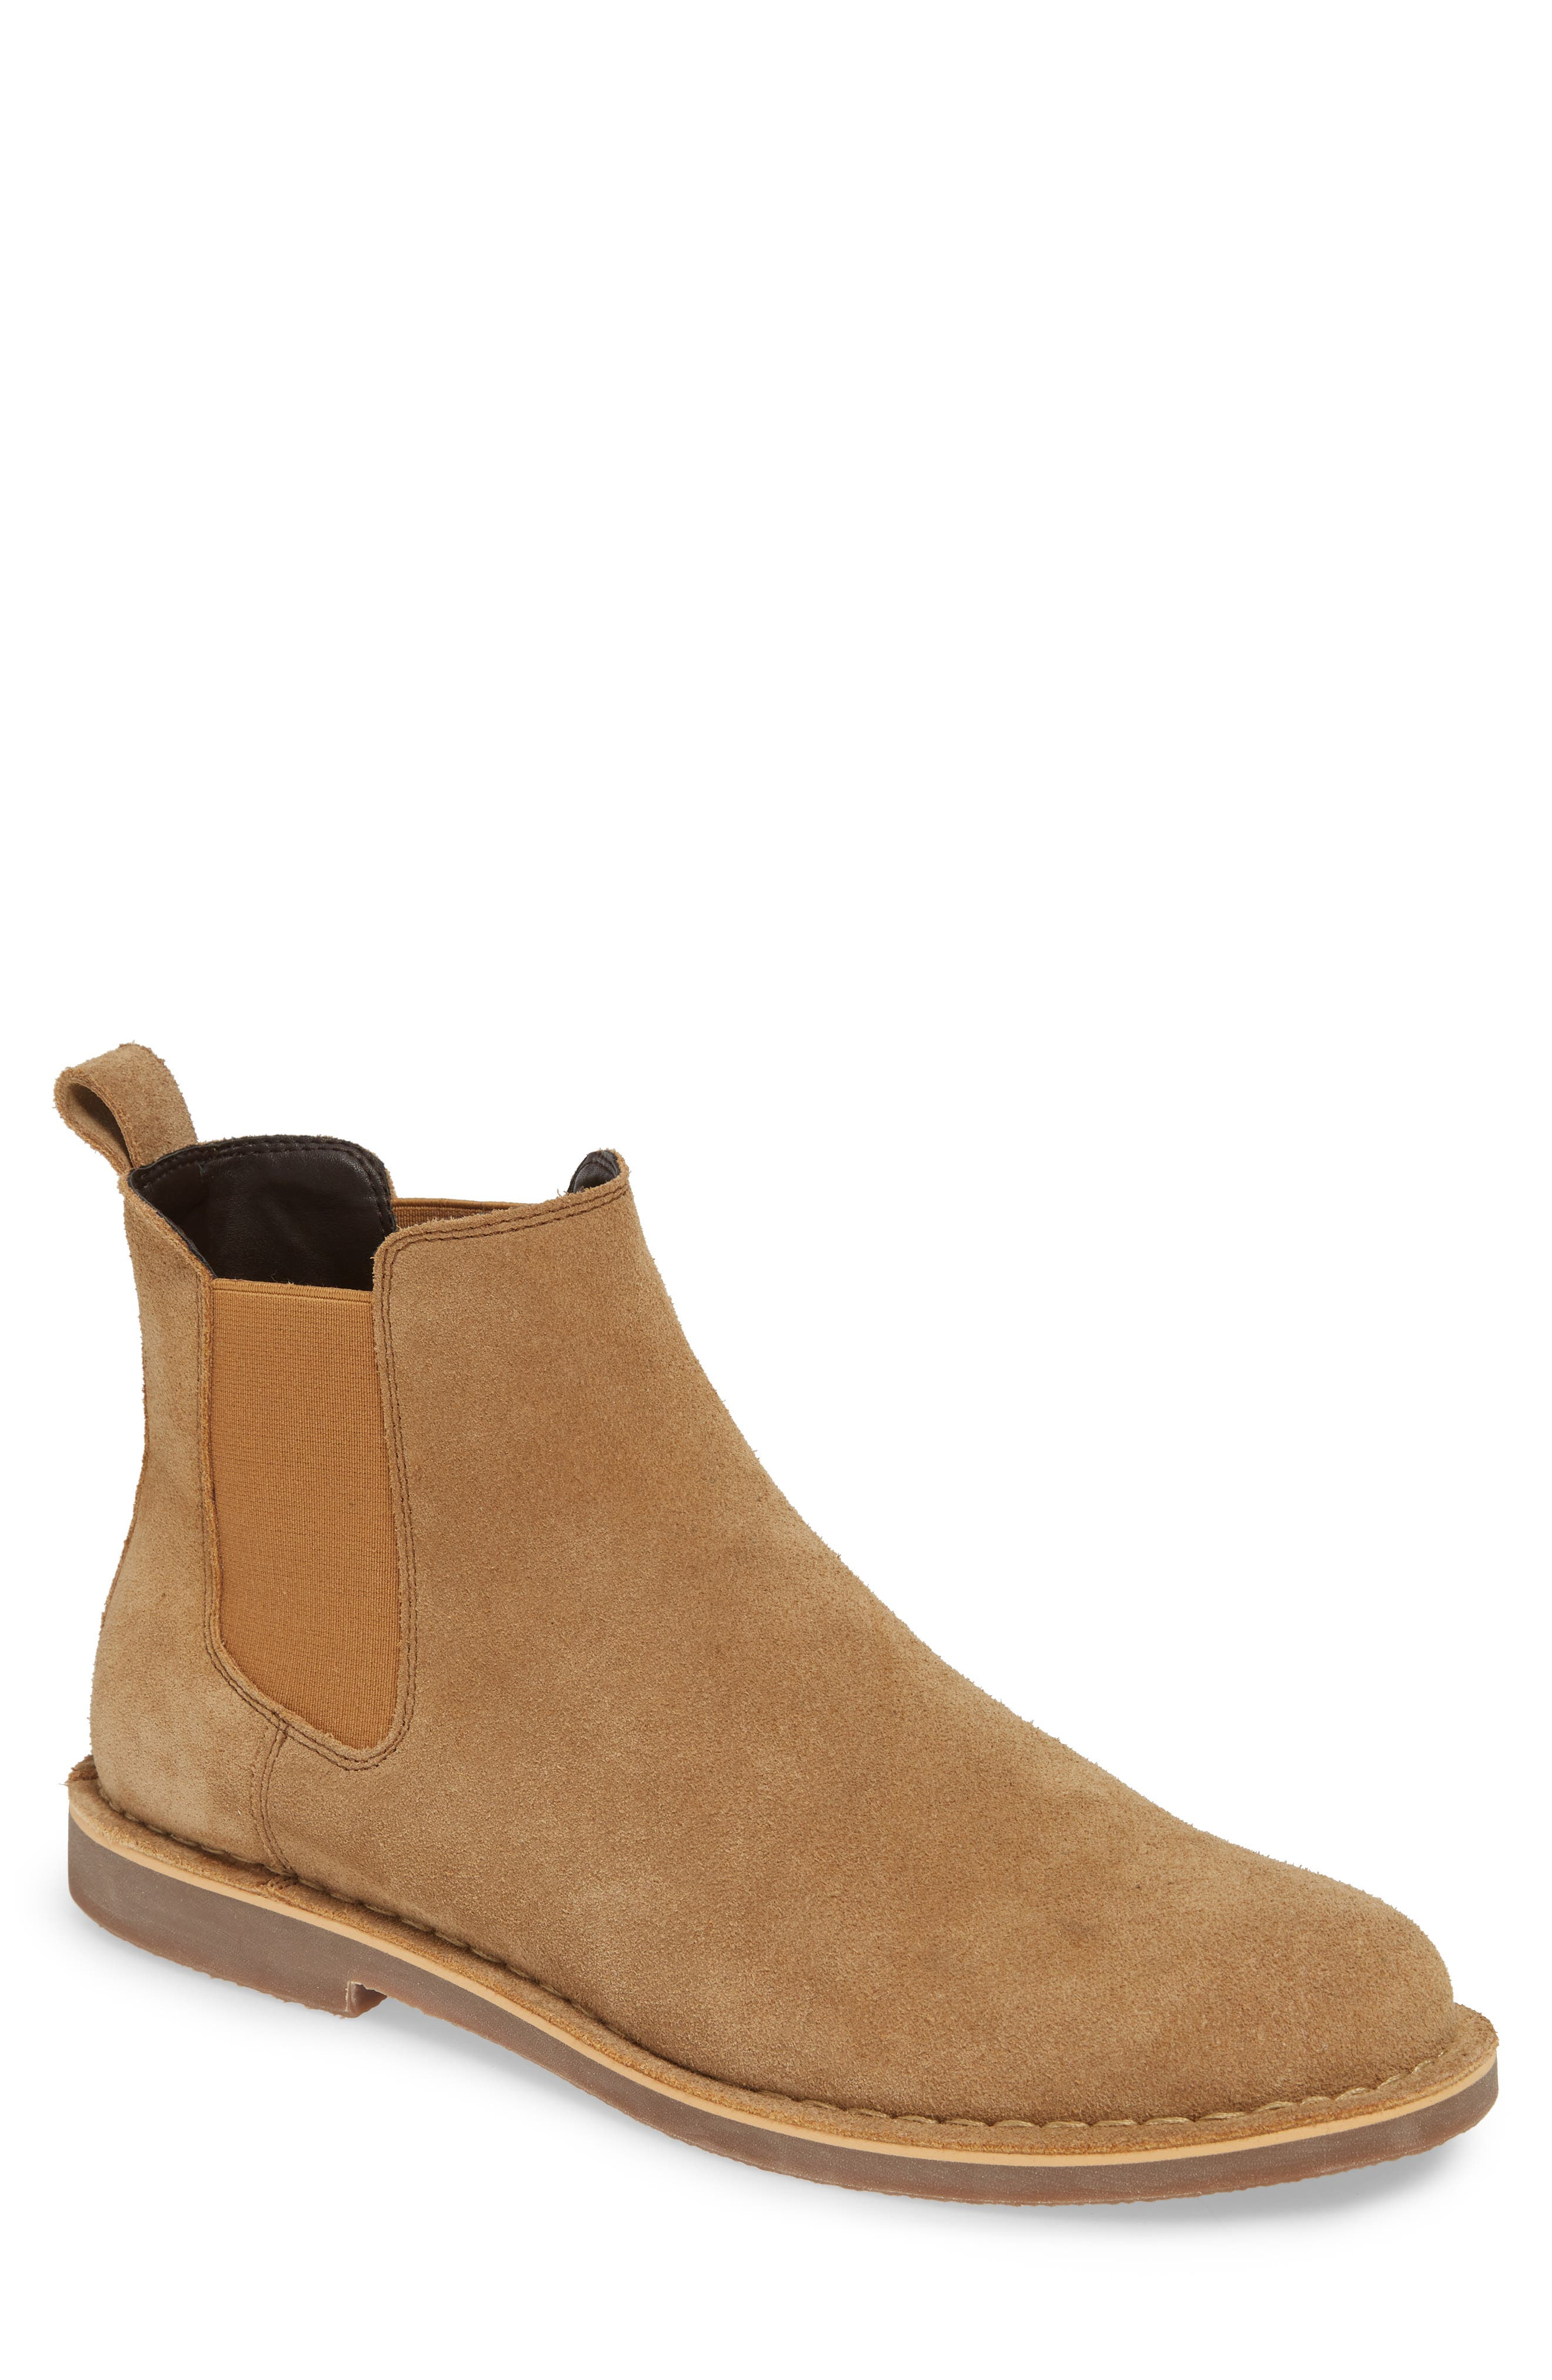 THE RAIL, Payson Chelsea Boot, Main thumbnail 1, color, SAND SUEDE